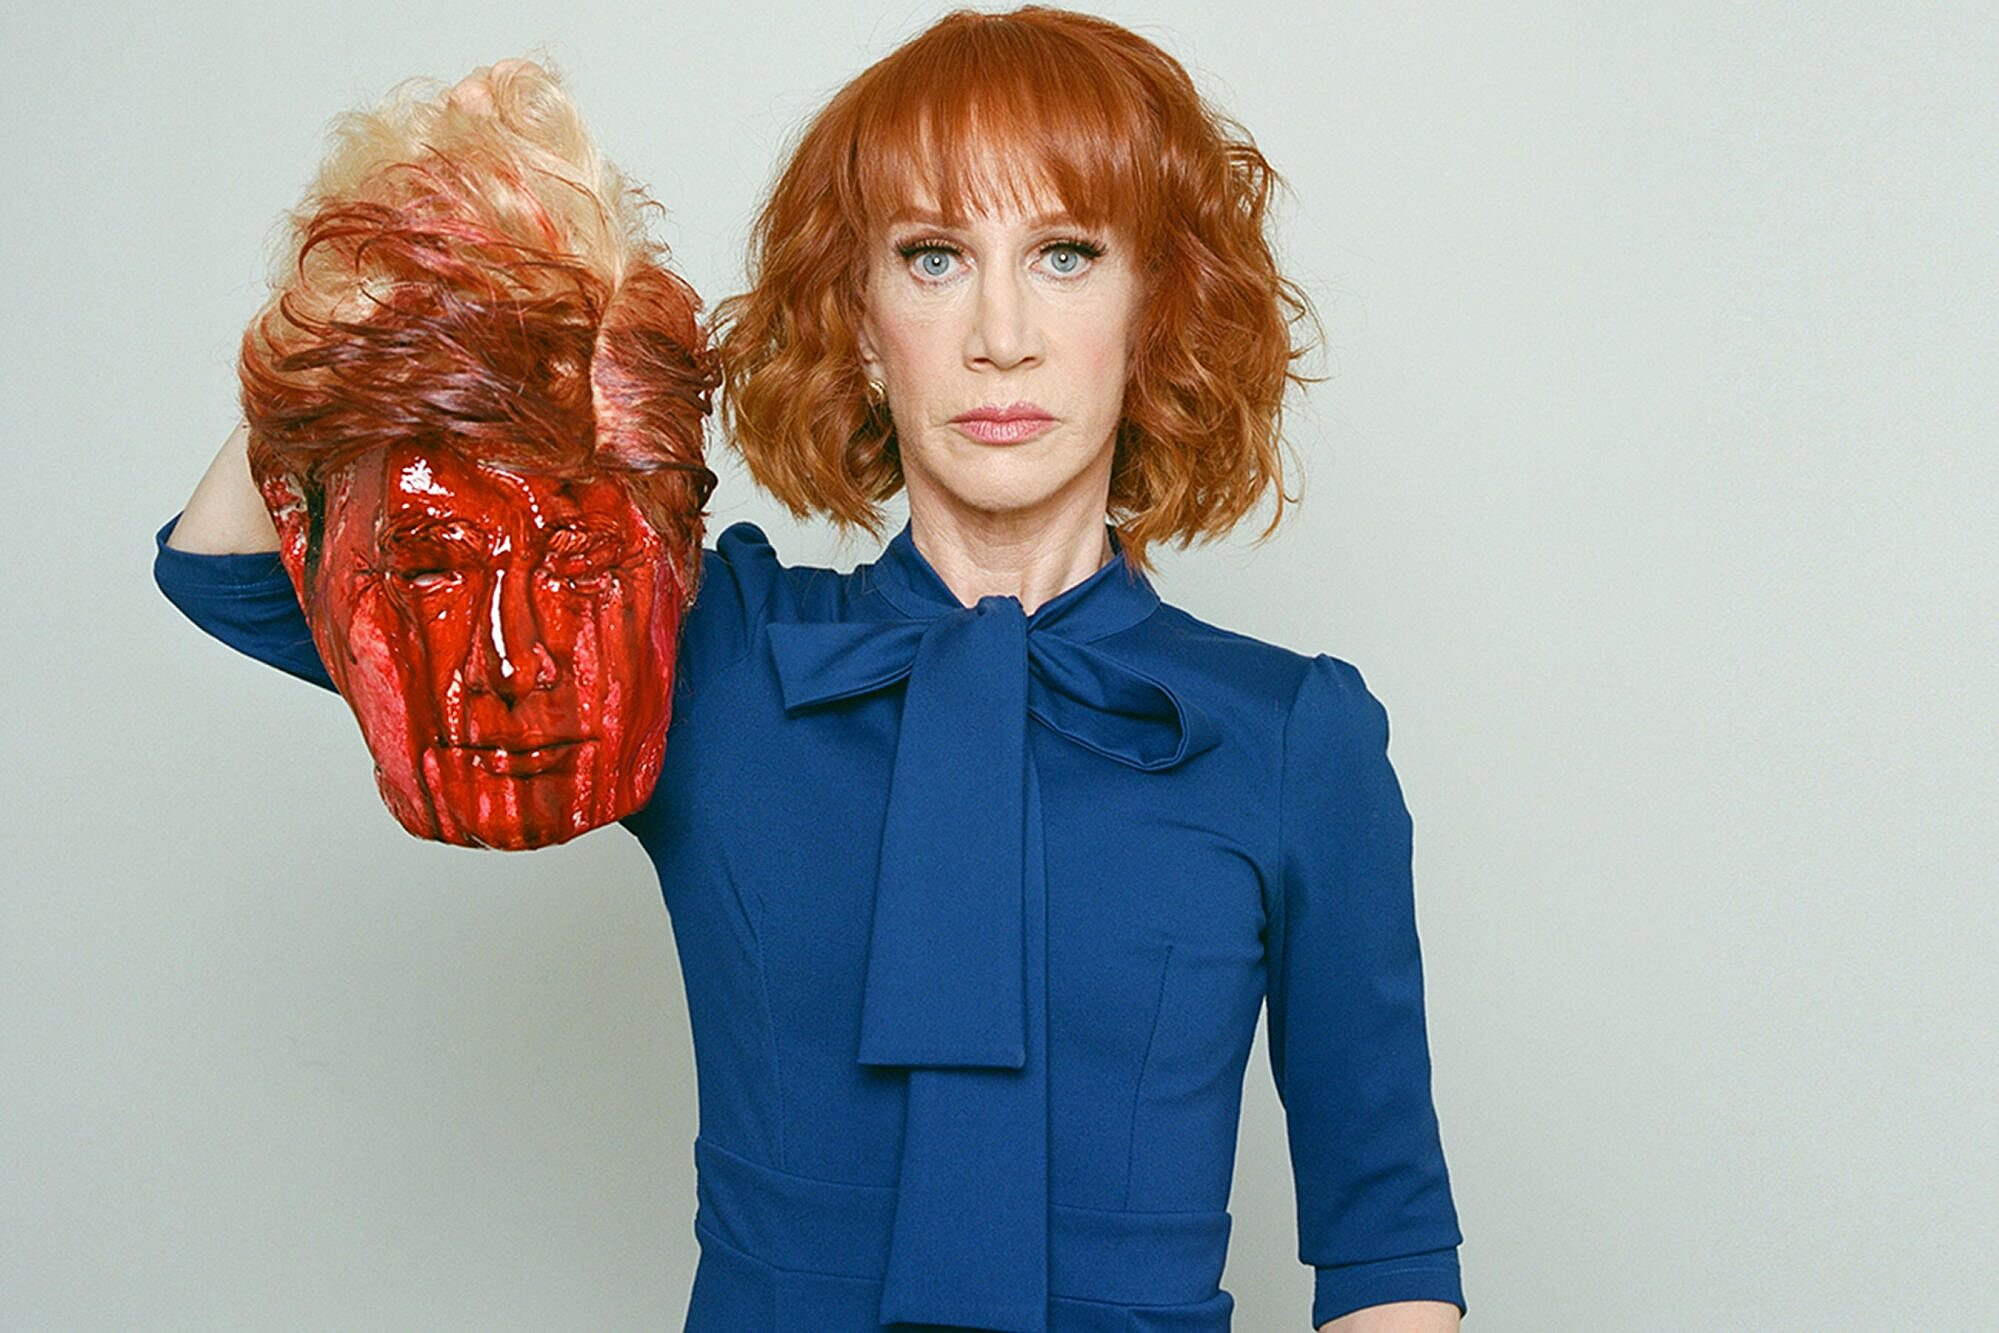 Kathy Griffin Trump photo: Tyler Shields explains decapitated image | EW.com